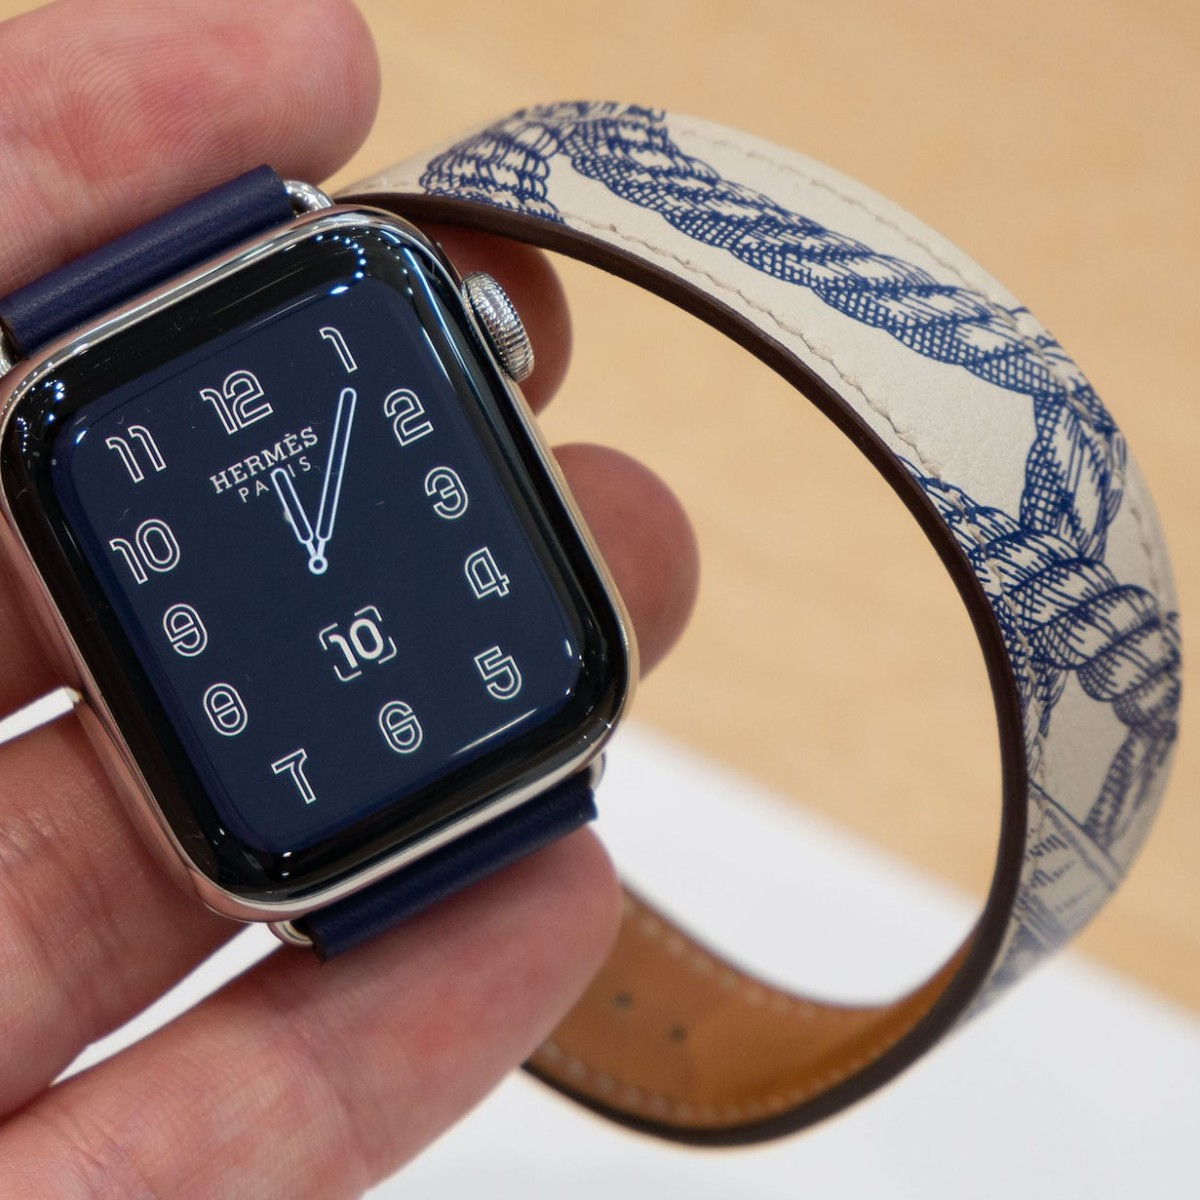 Apple Watch Series 5 Hermès Bands make your smartwatch look incredible